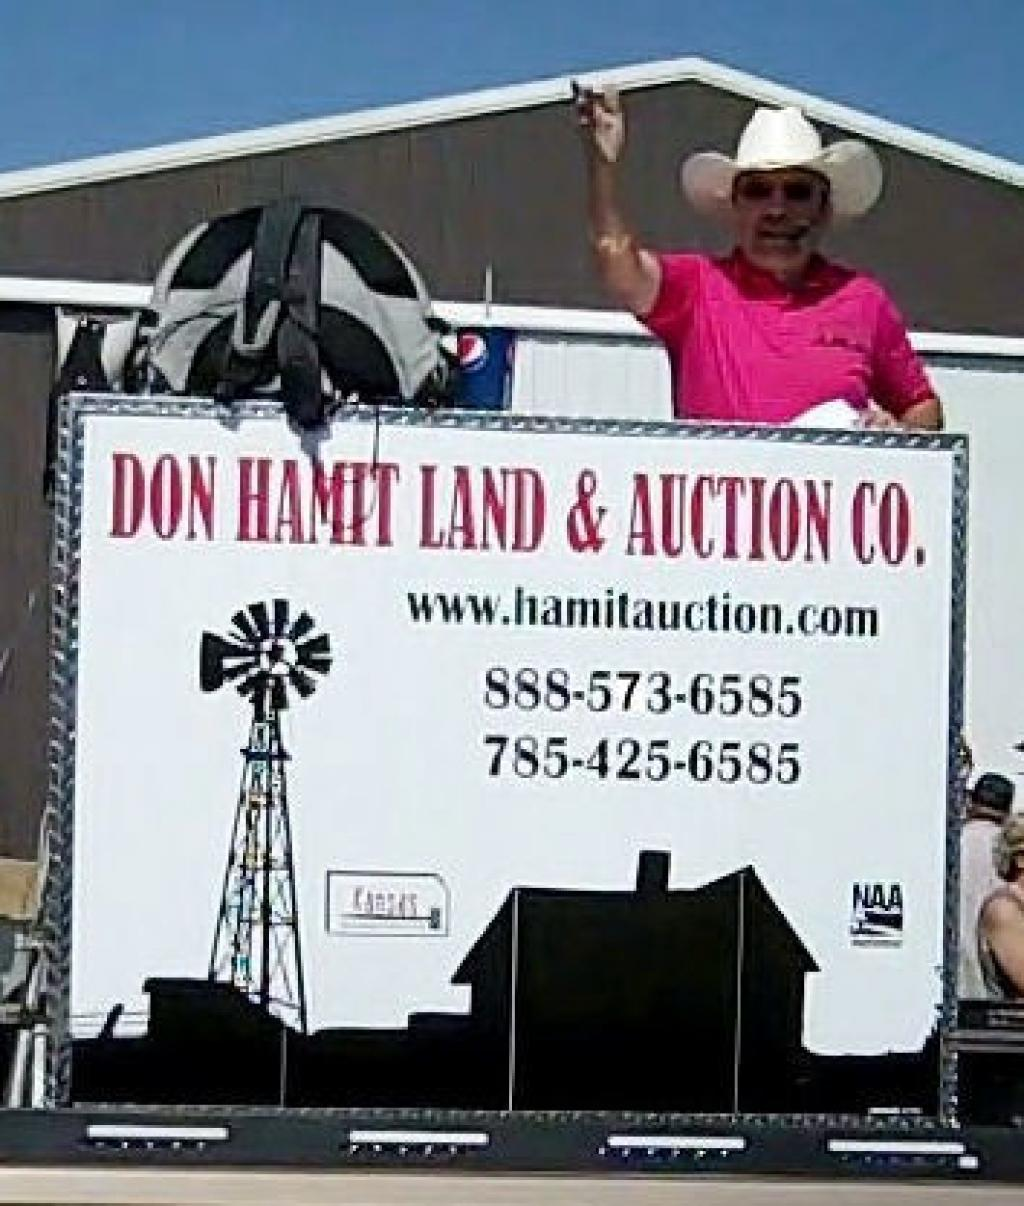 Don Hamit Land & Auction Co., Inc. on Public Auction Finder